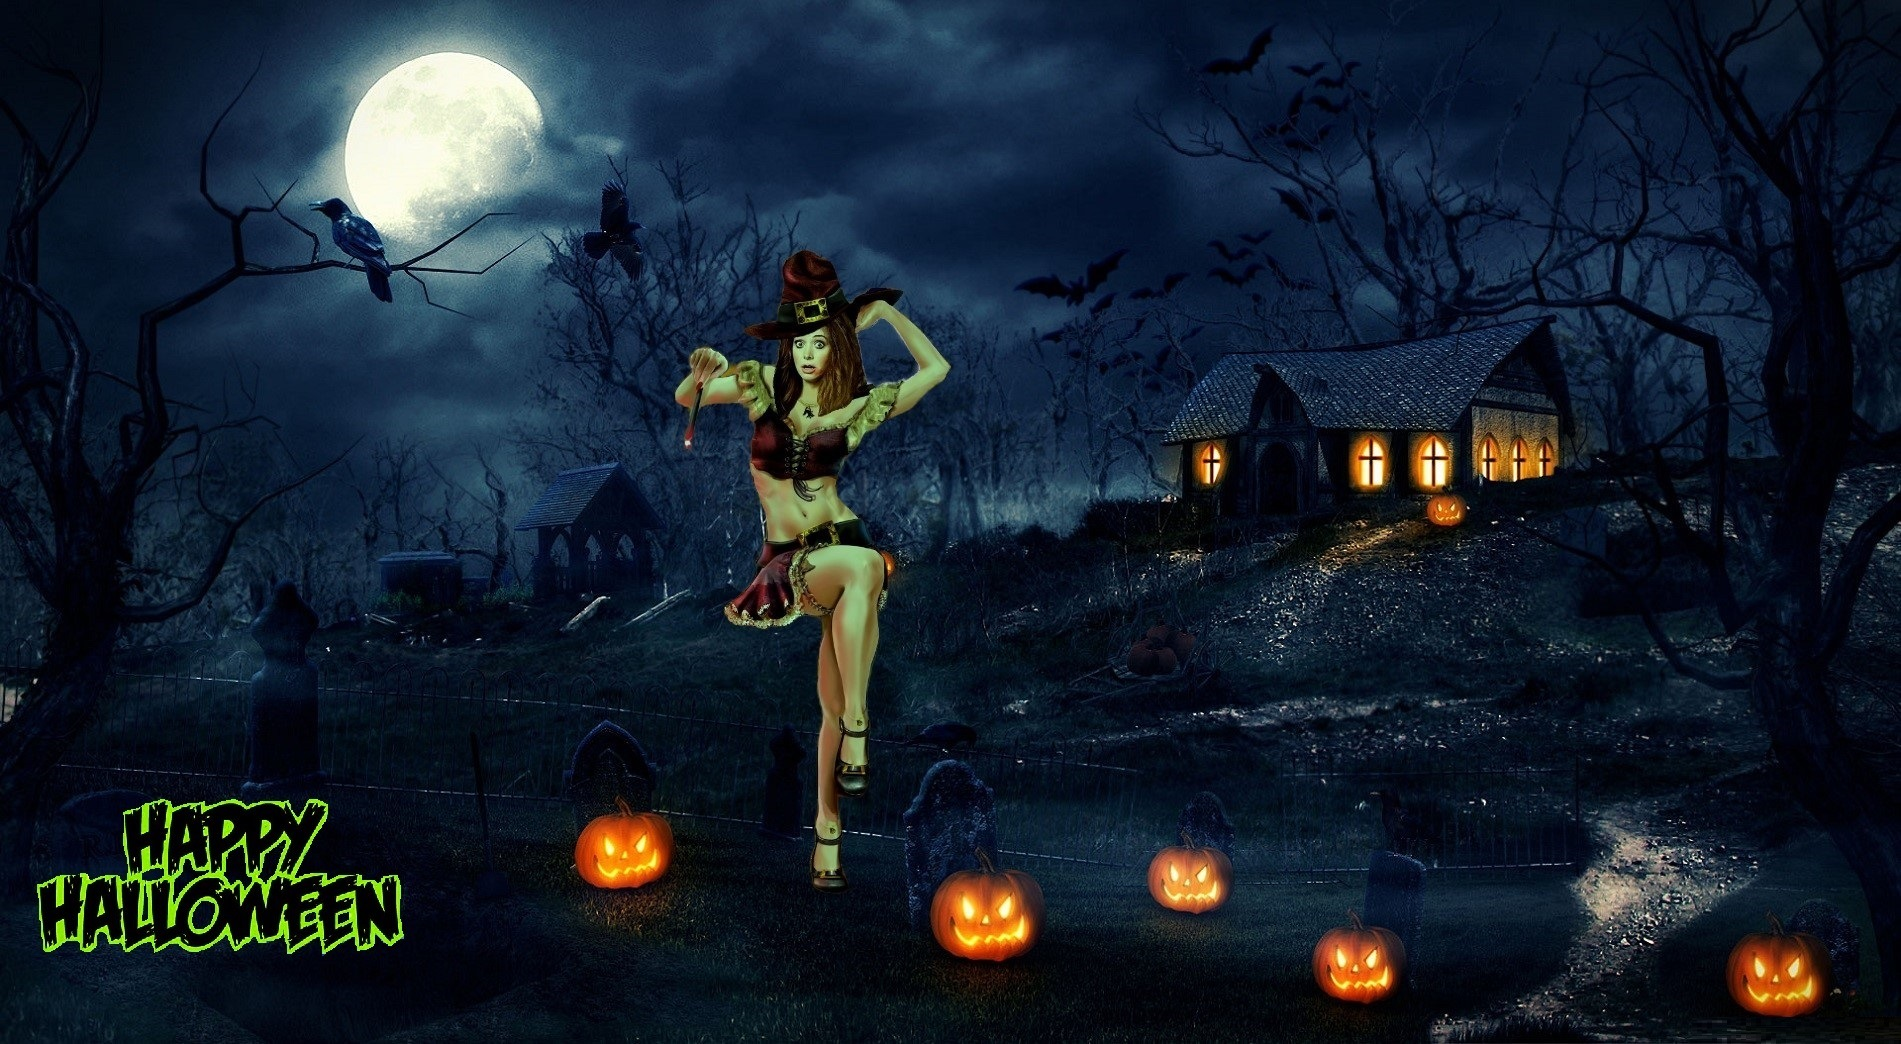 Happy Halloween Witchy Woman Her House & Yard on the Hill